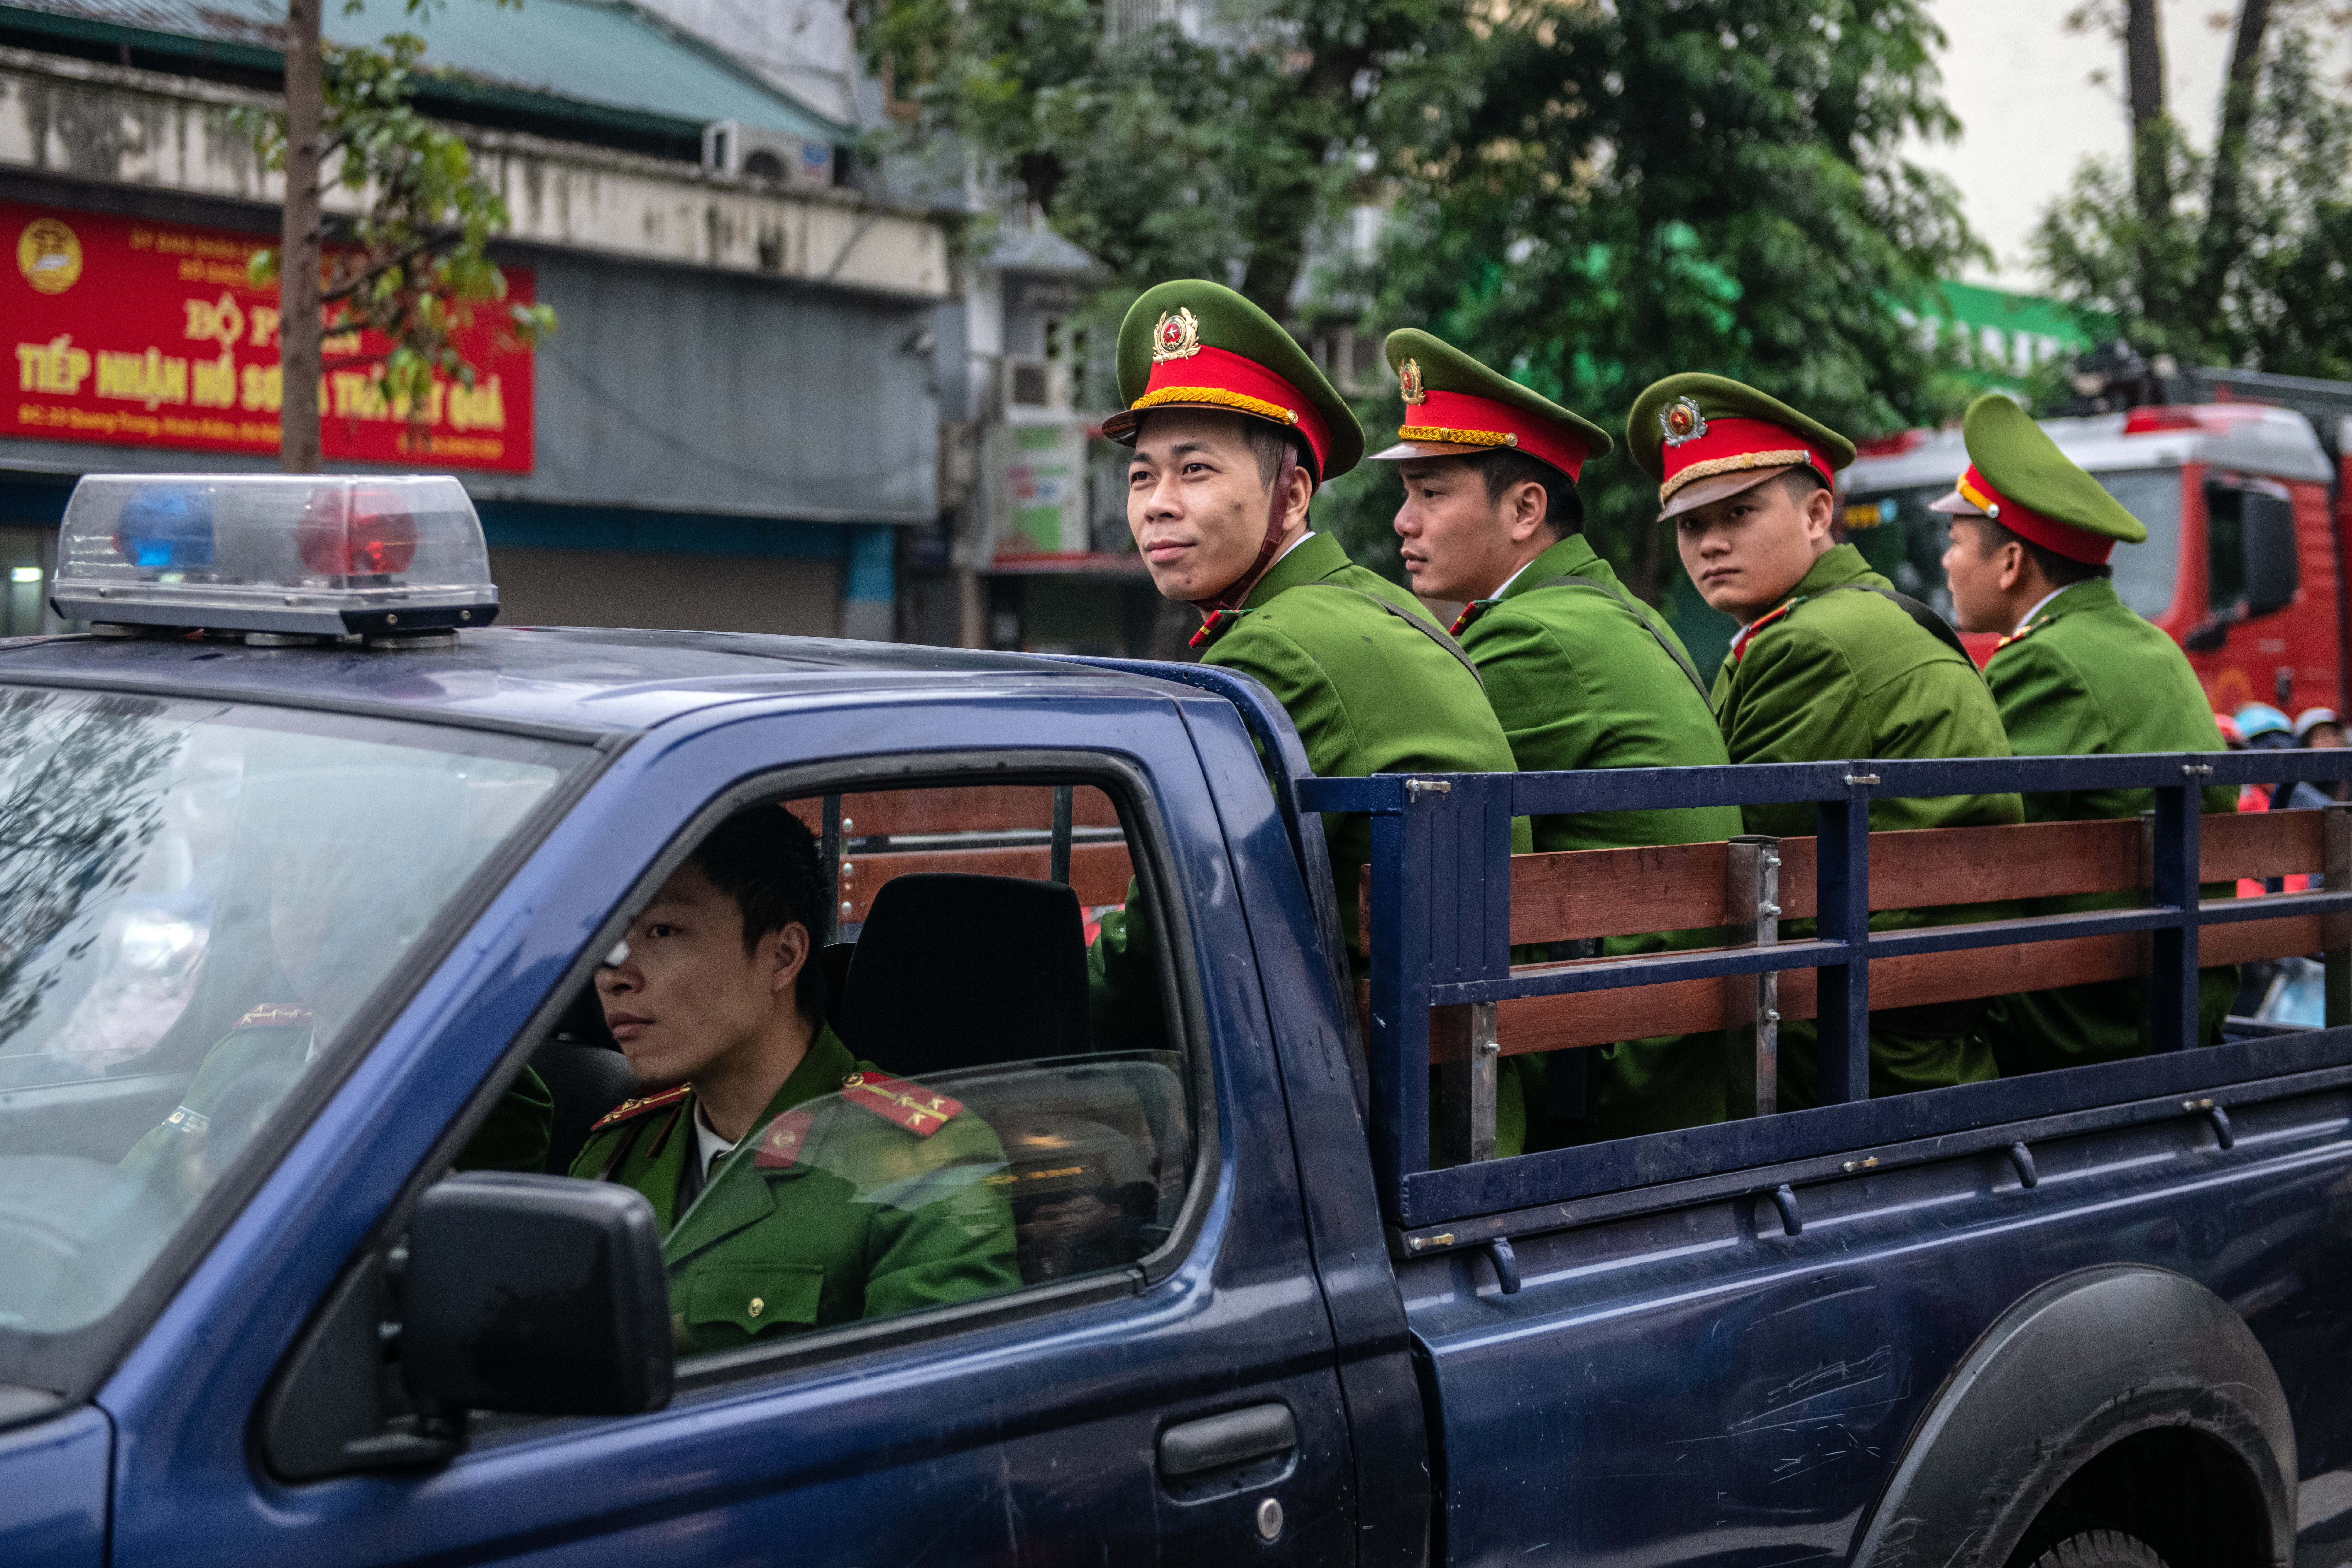 Police officers arrive to guard roads near the Melia Hotel before the arrival of North Korea's leader Kim Jong-un.